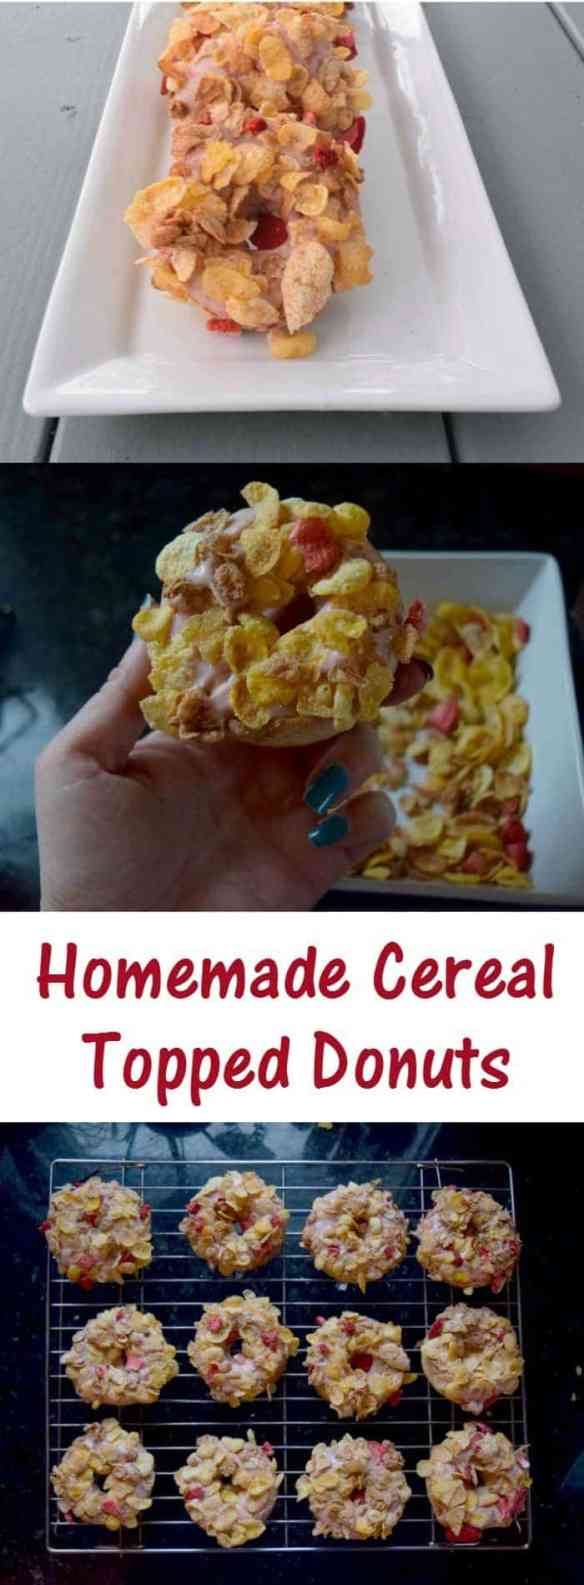 These homemade strawberry cereal topped donuts are easy to make and healthier than fried. From scratch baked donuts recipes are easy to follow and are a perfect weekend breakfast treat. Get creative with your toppings and enjoy cereal anytime!